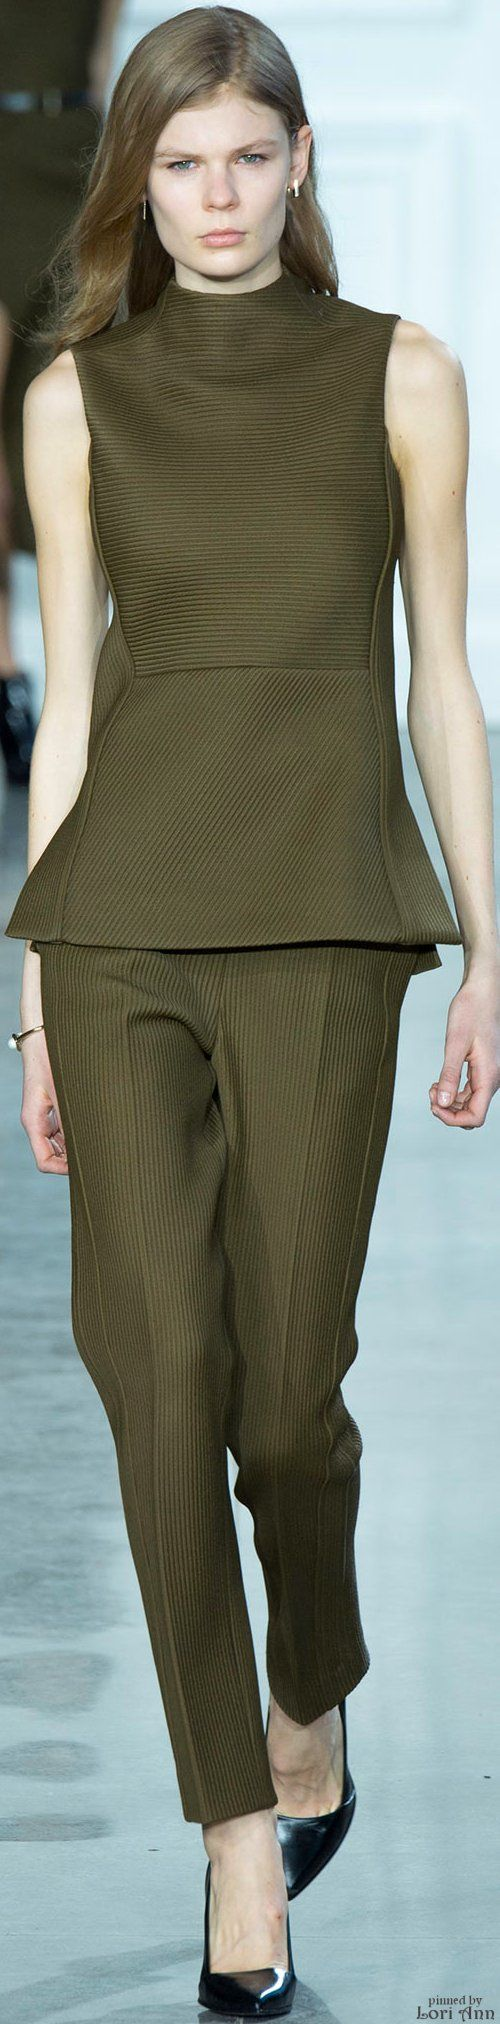 Jason Wu Fall 2015 RTW